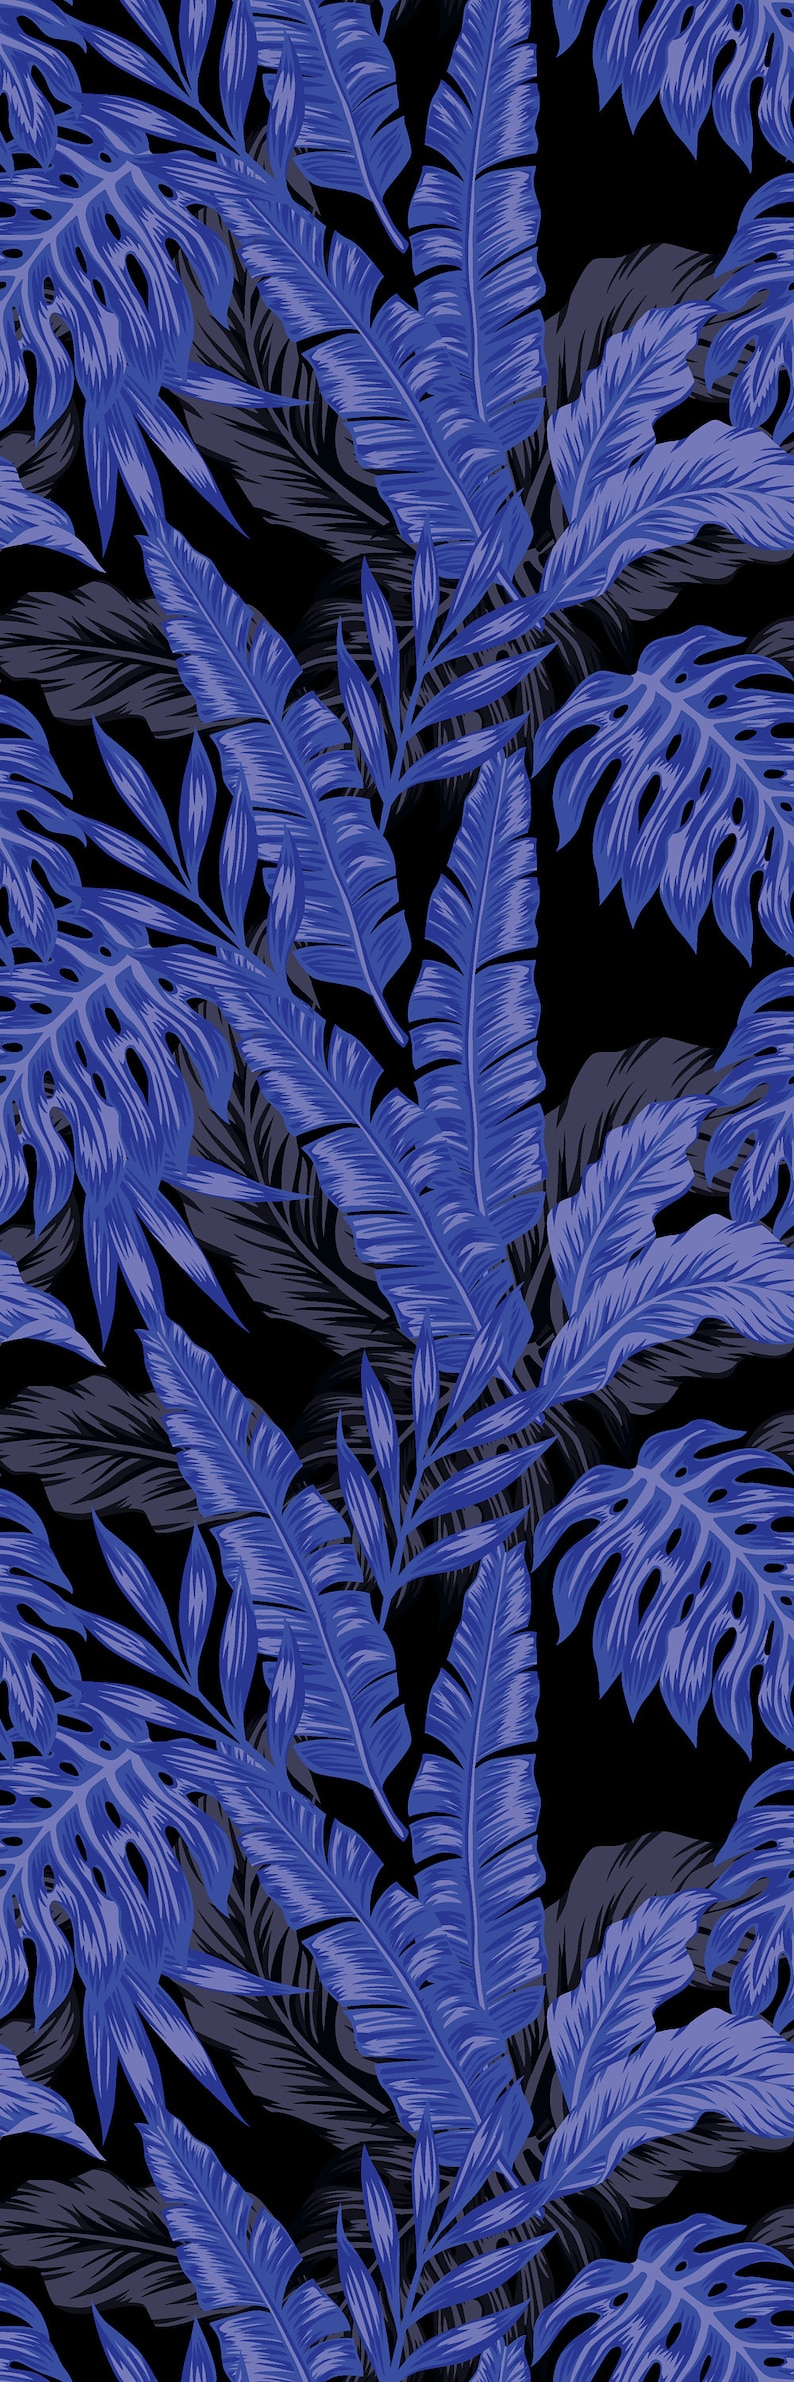 Removable Wallpaper Self Adhesive Wallpaper Purple Tropical Leaves on Black Background Peel /& Stick Wallpaper